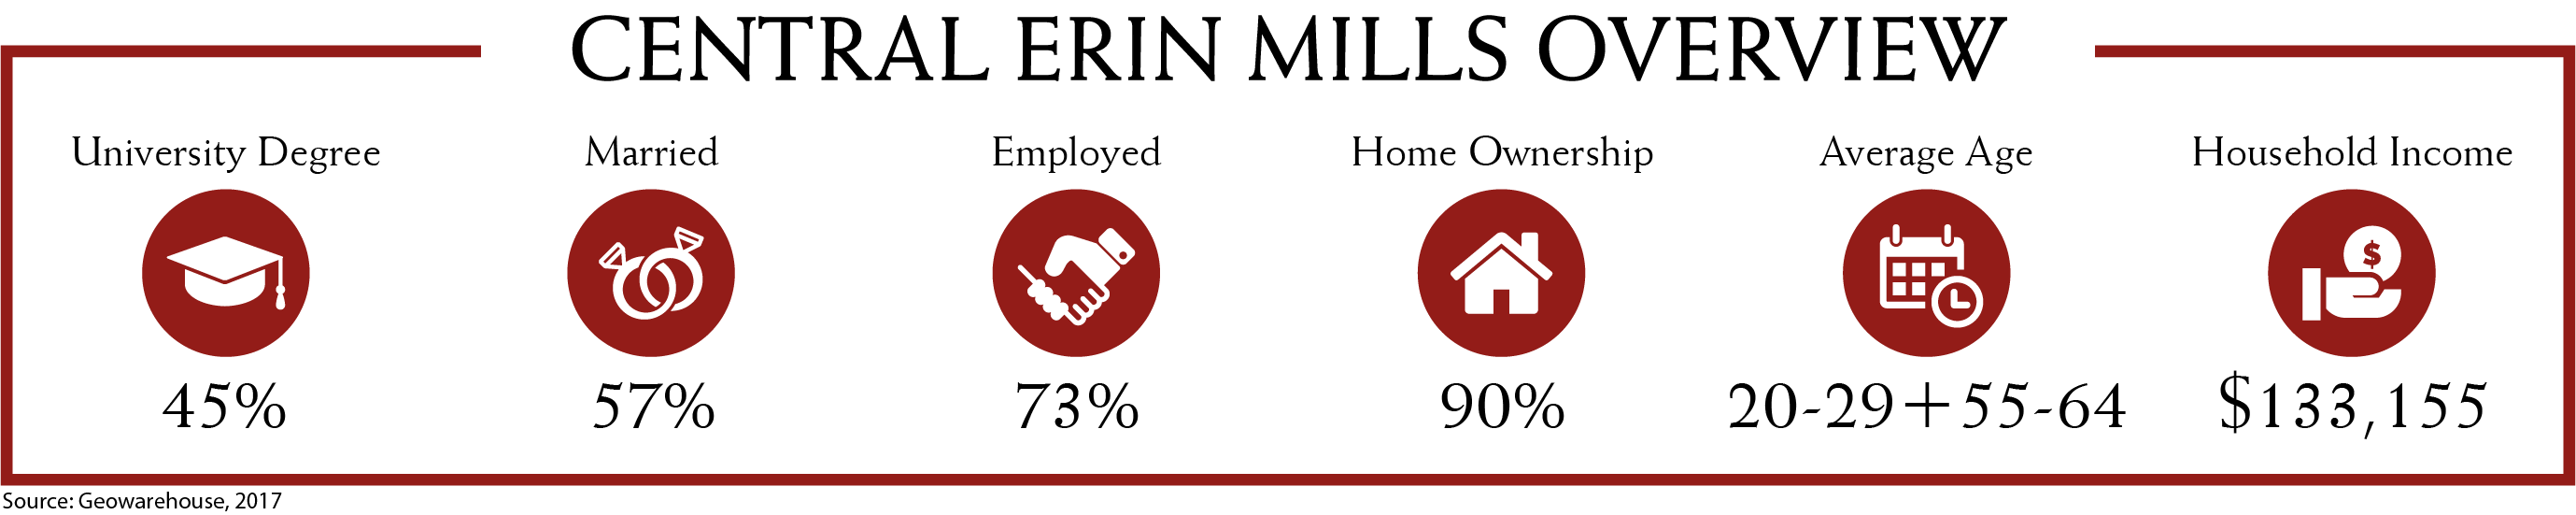 Central Erin Mills Demographics